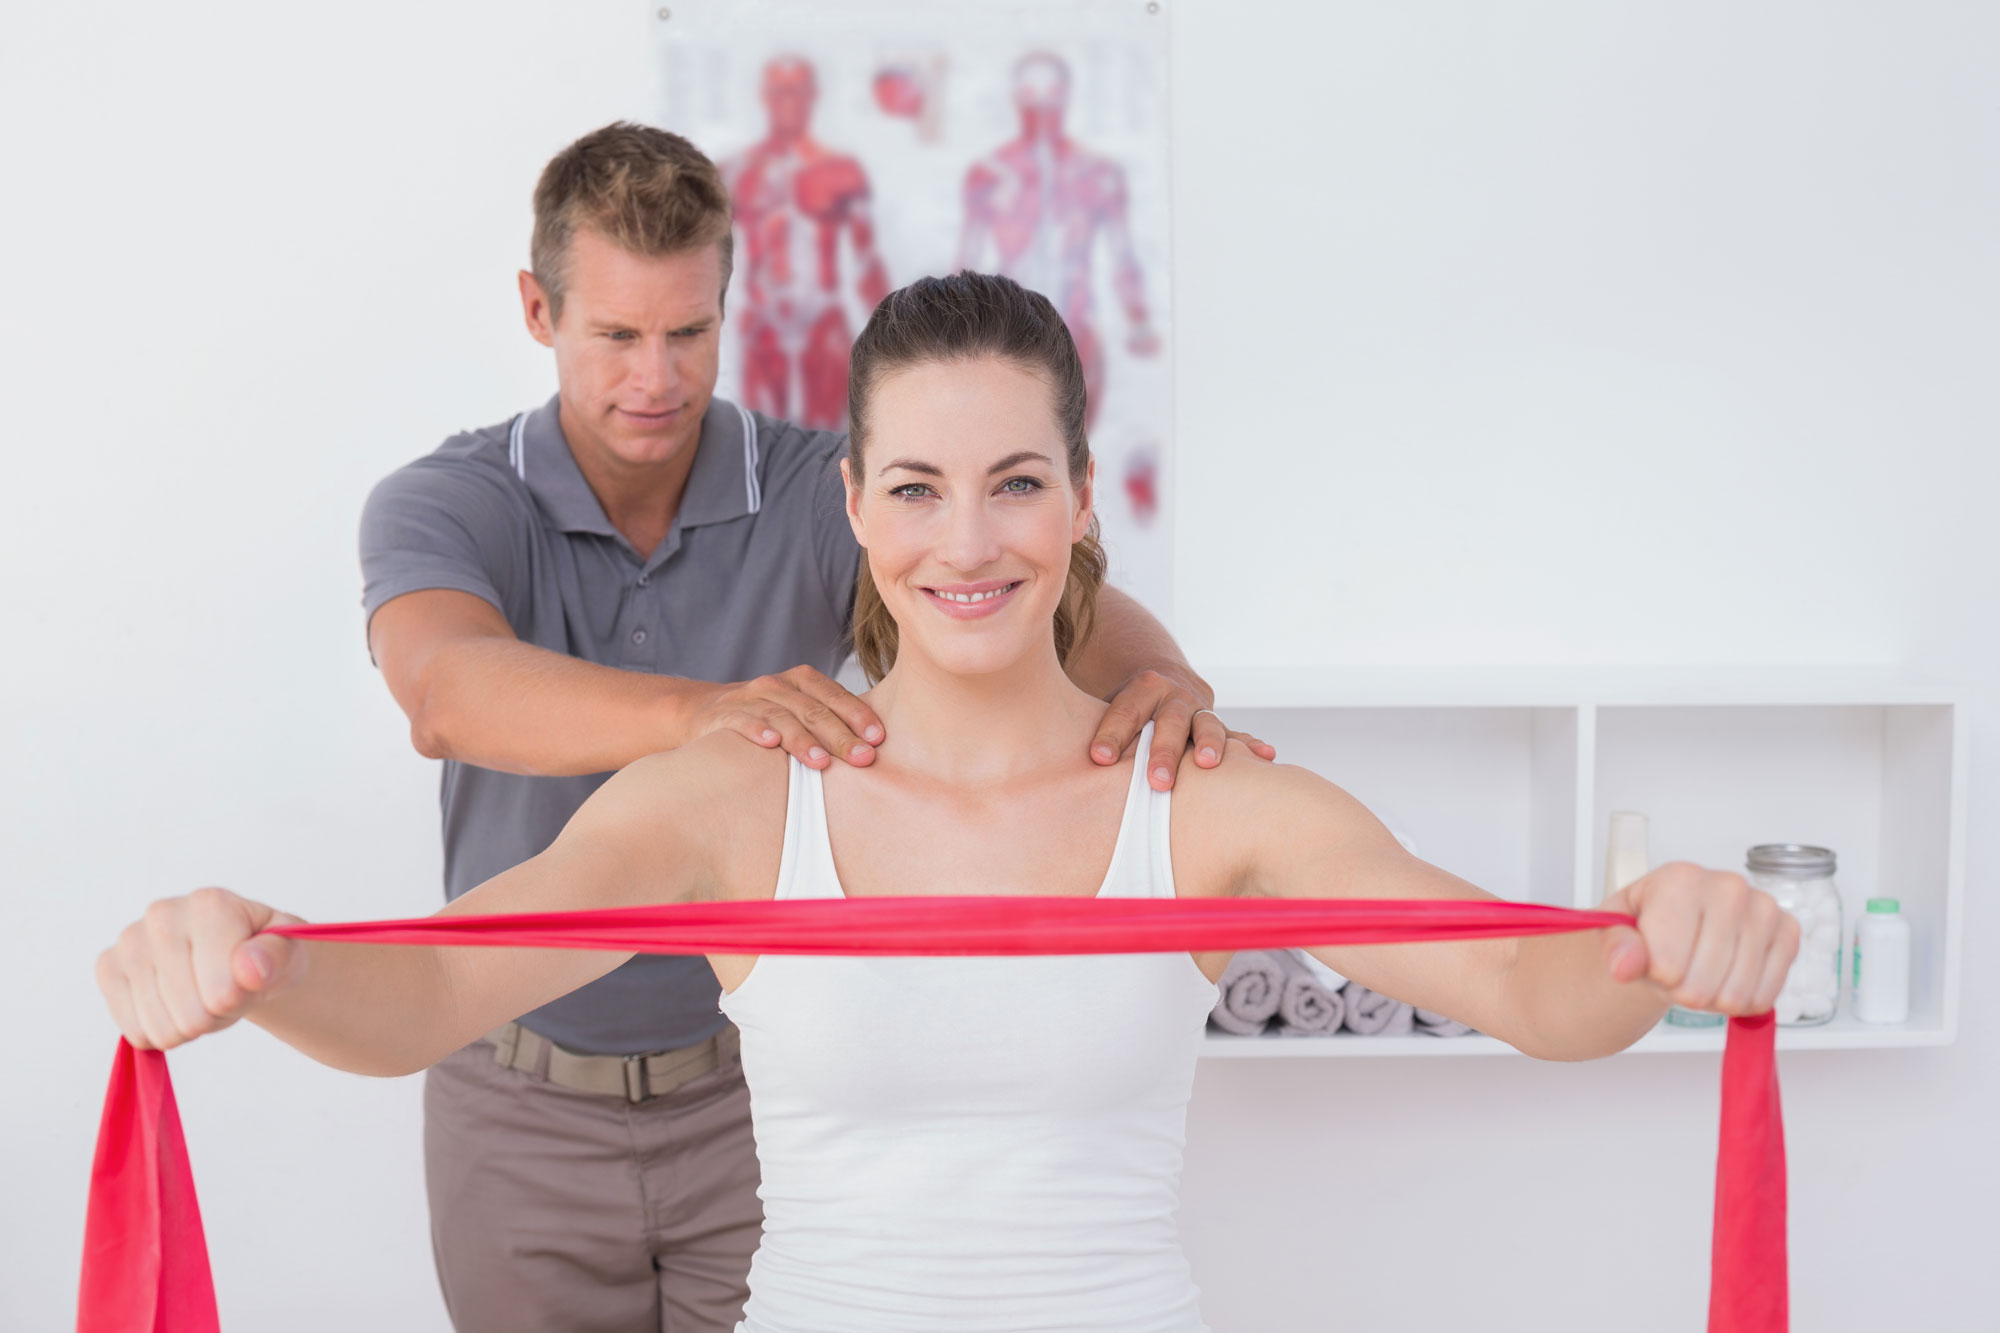 physiotherapy, Seek Hands-on Physiotherapy Treatments To Manage Chronic Pain